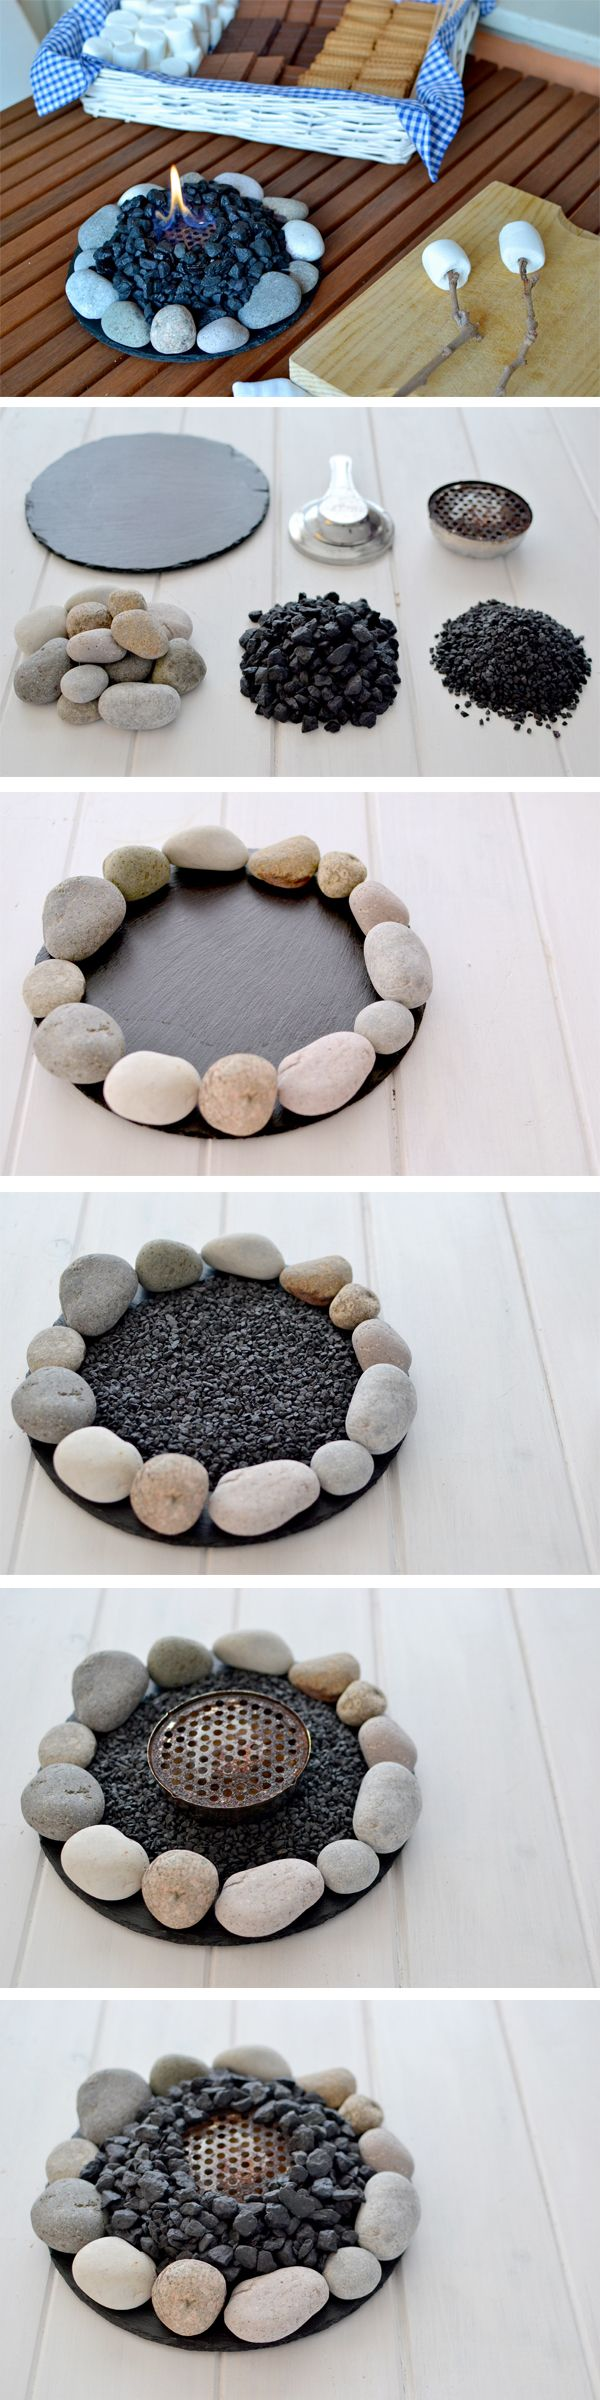 Make a Campfire at Home. See the tutorial